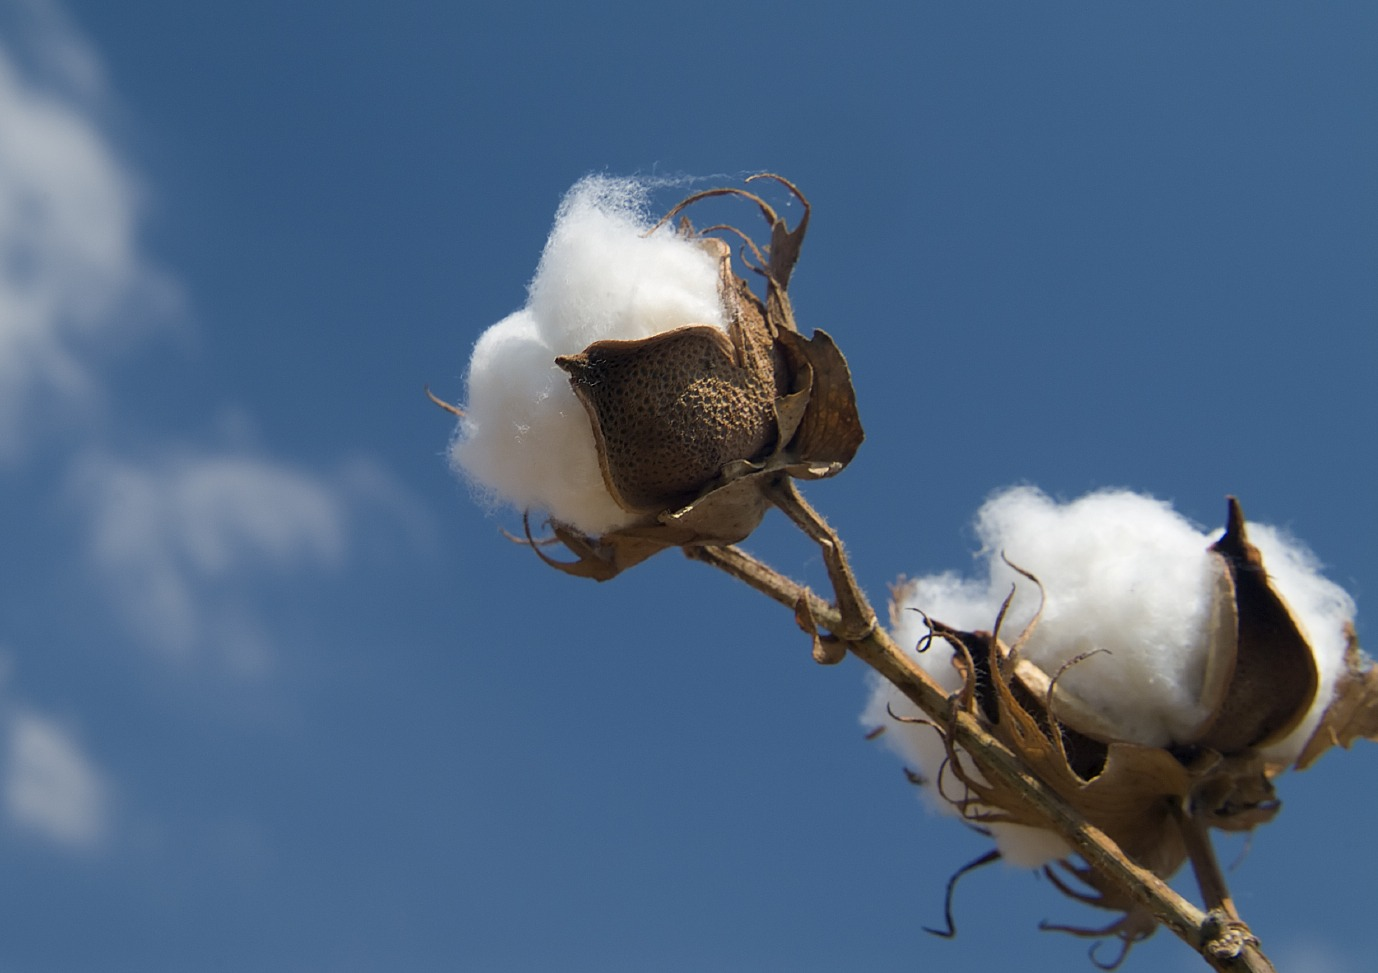 The Cotton Wars